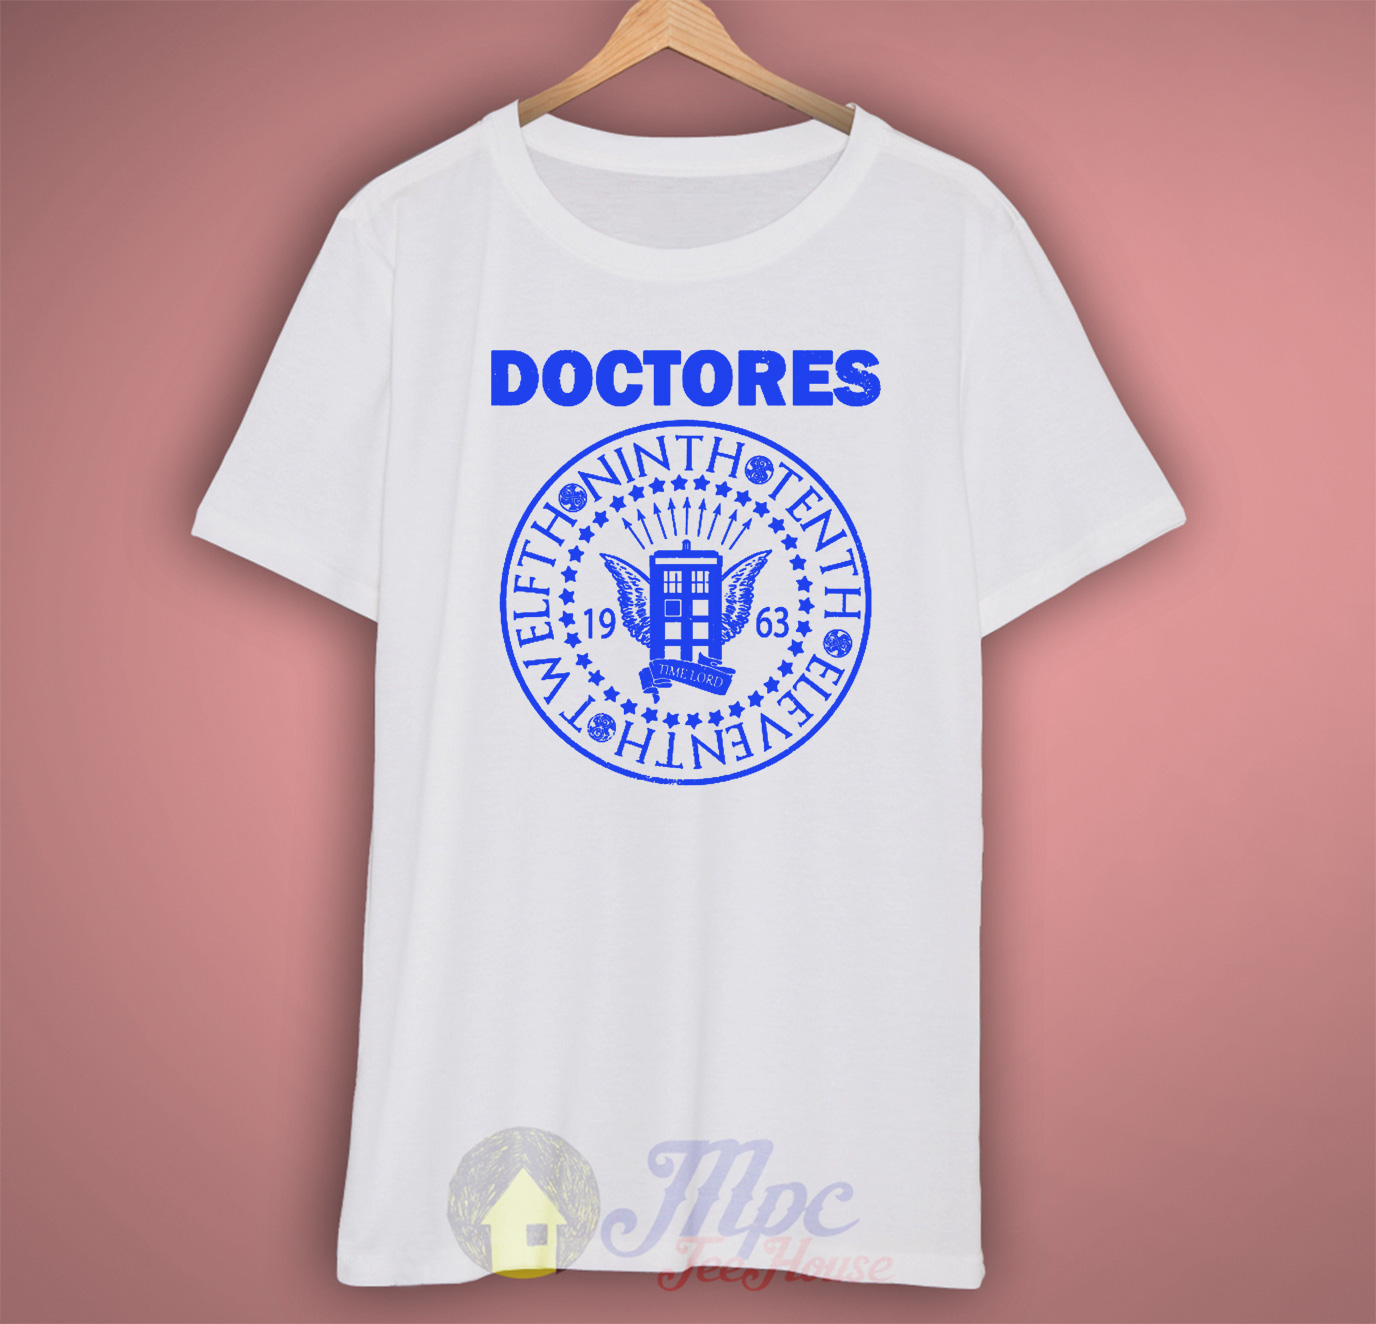 2e98b493 Doctor Who Doctores T Shirt Available Size S M L XL XXl